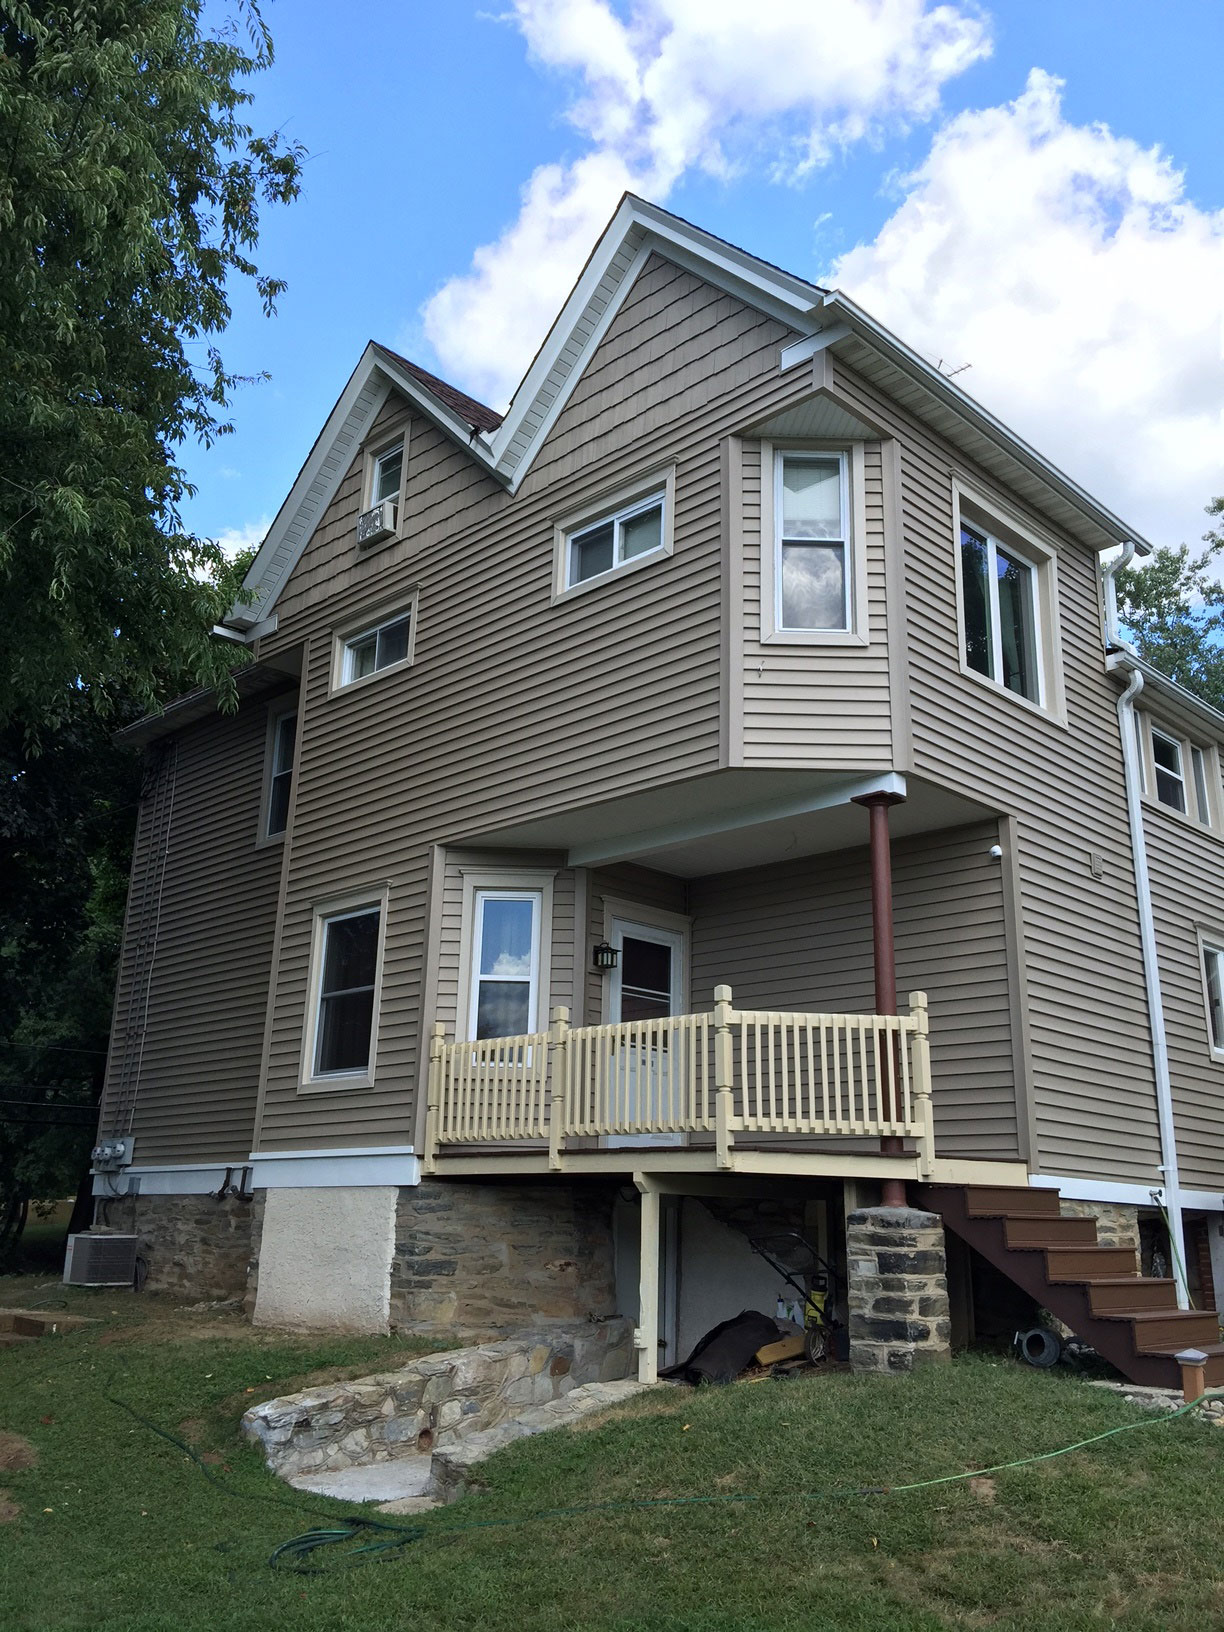 Home with New Siding - Siding Contractors In Berlin, NJ